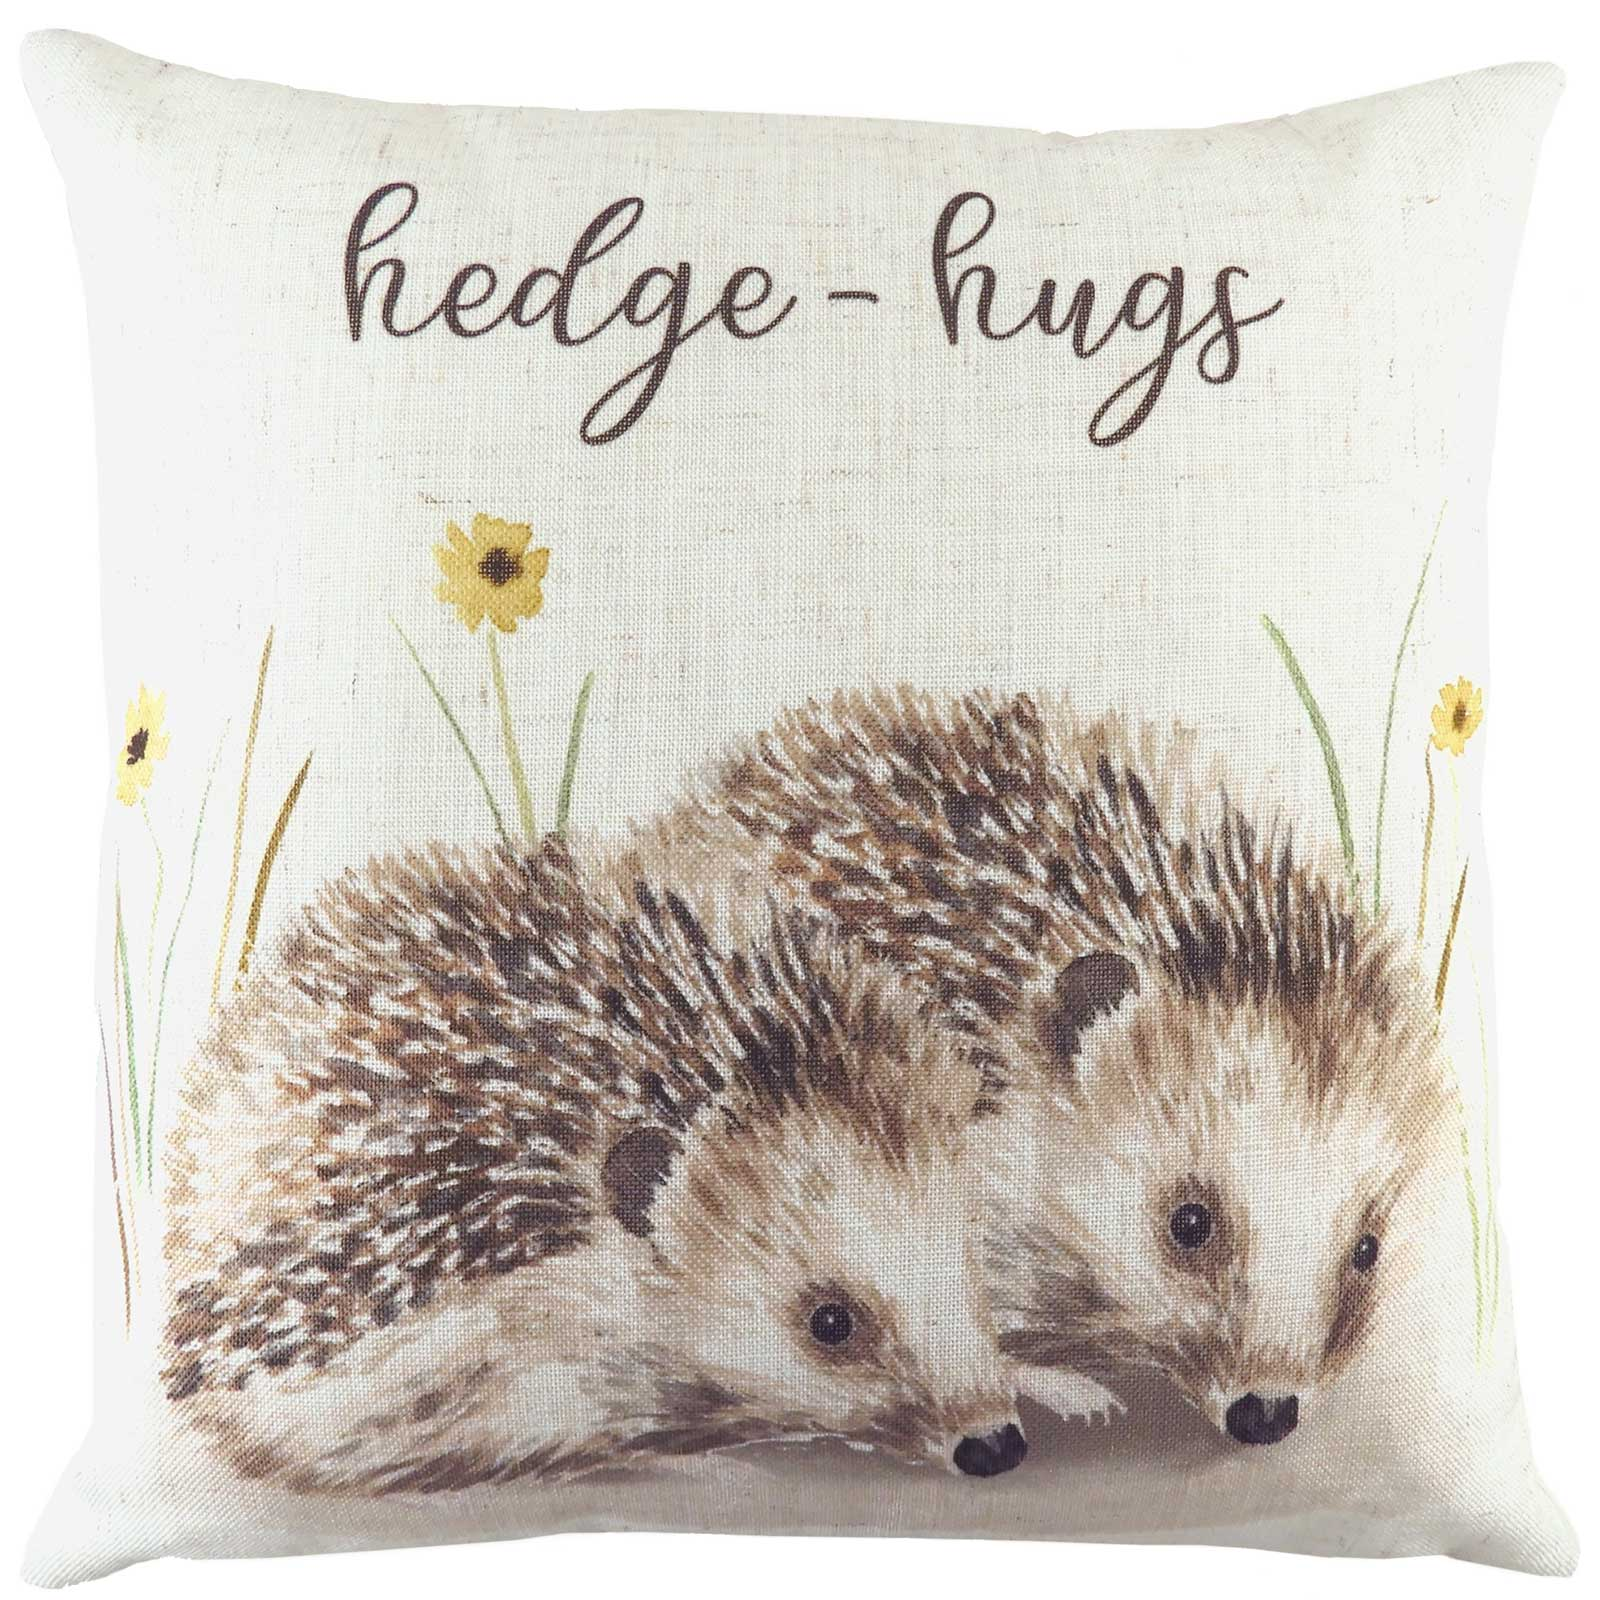 Woodland Hedgehog Hedge-Hugs Natural Cushion Covers 17'' x 17'' -  - Ideal Textiles